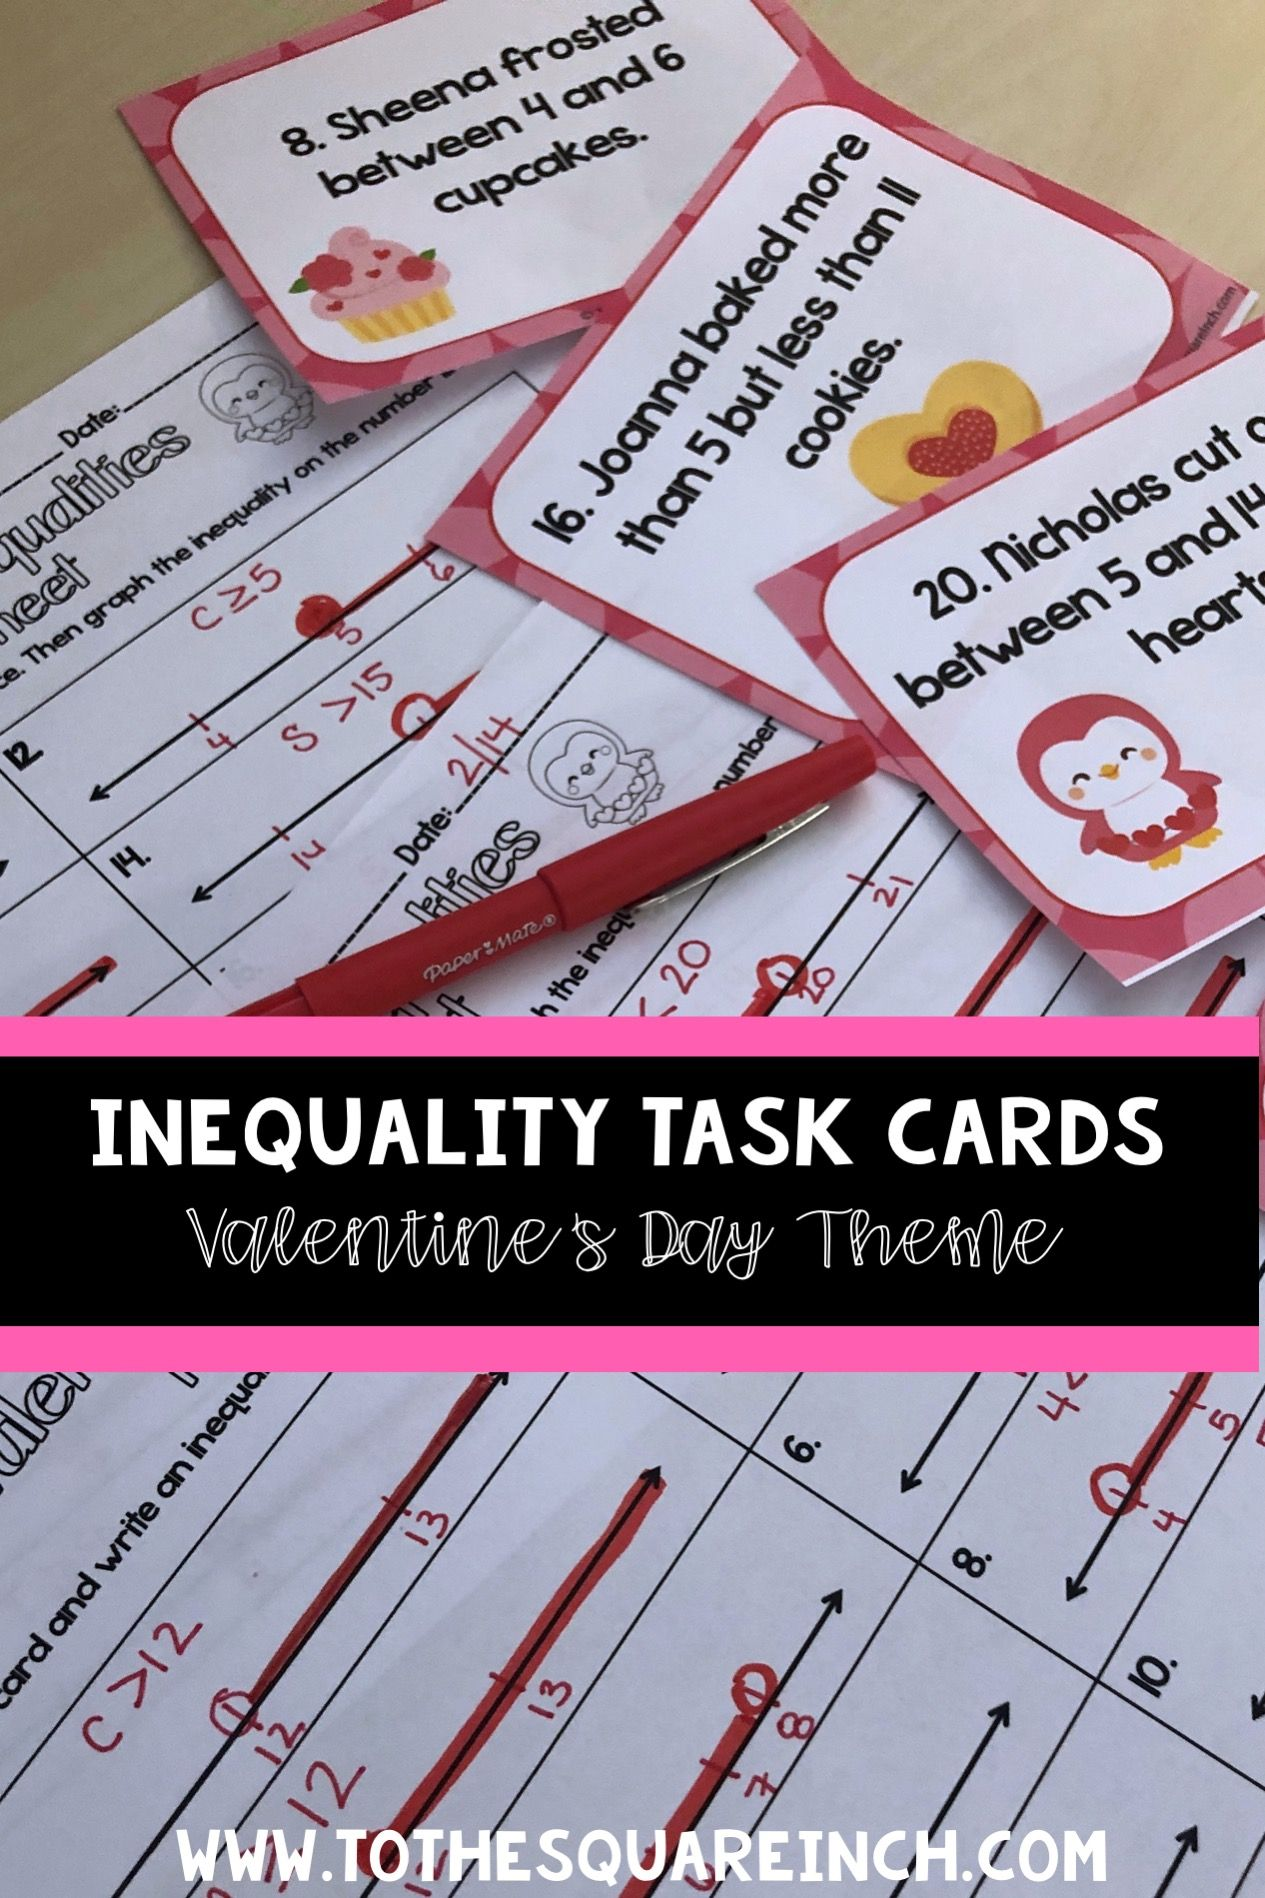 Valentines Day Inequalities Task Cards